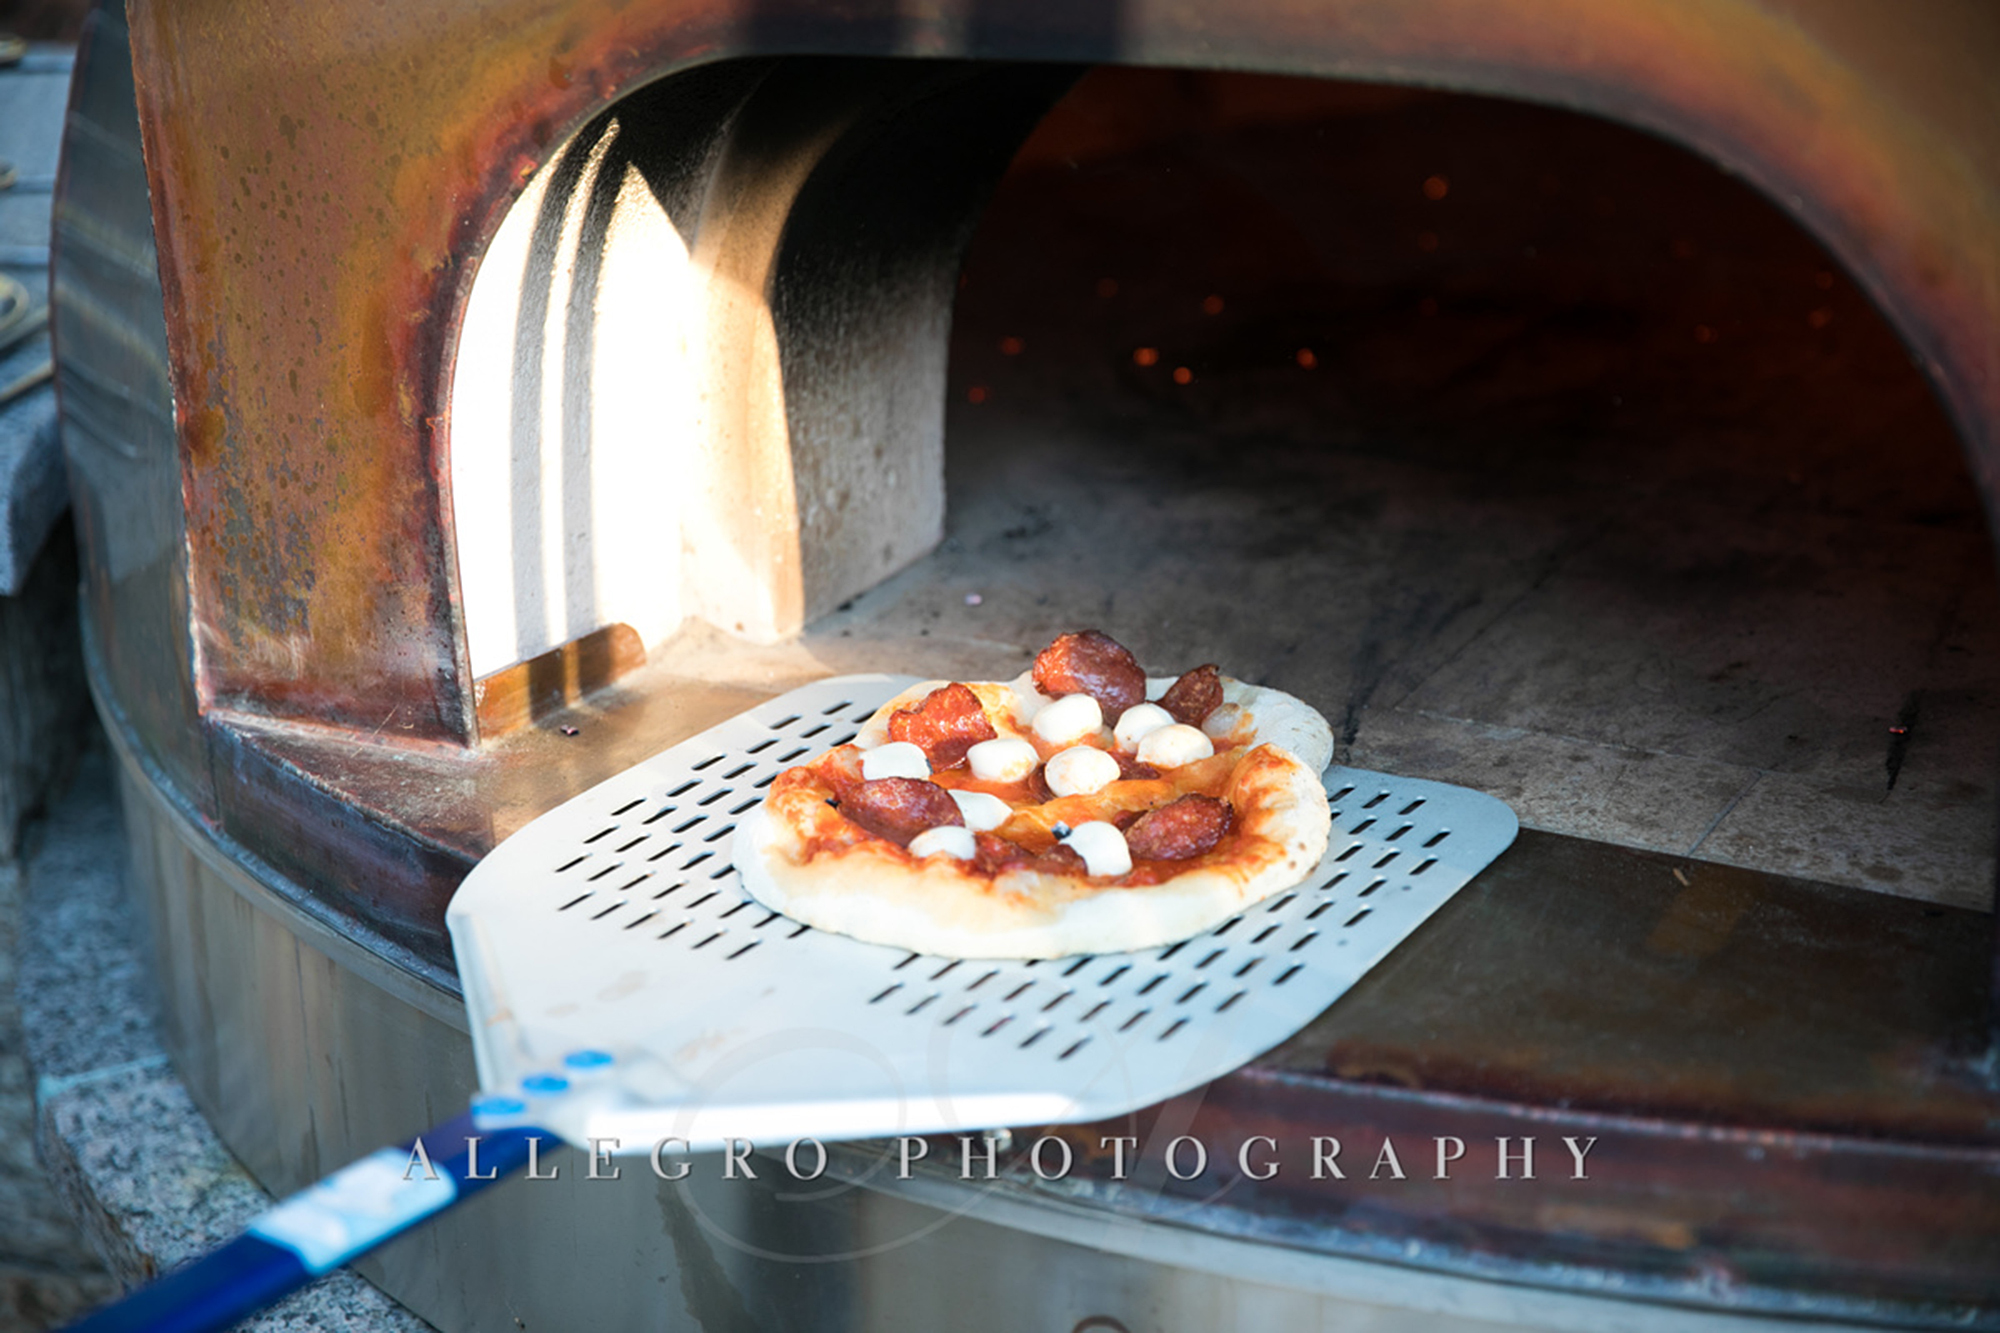 06_Private Engagement Party Food Pizza_AE Events.jpg